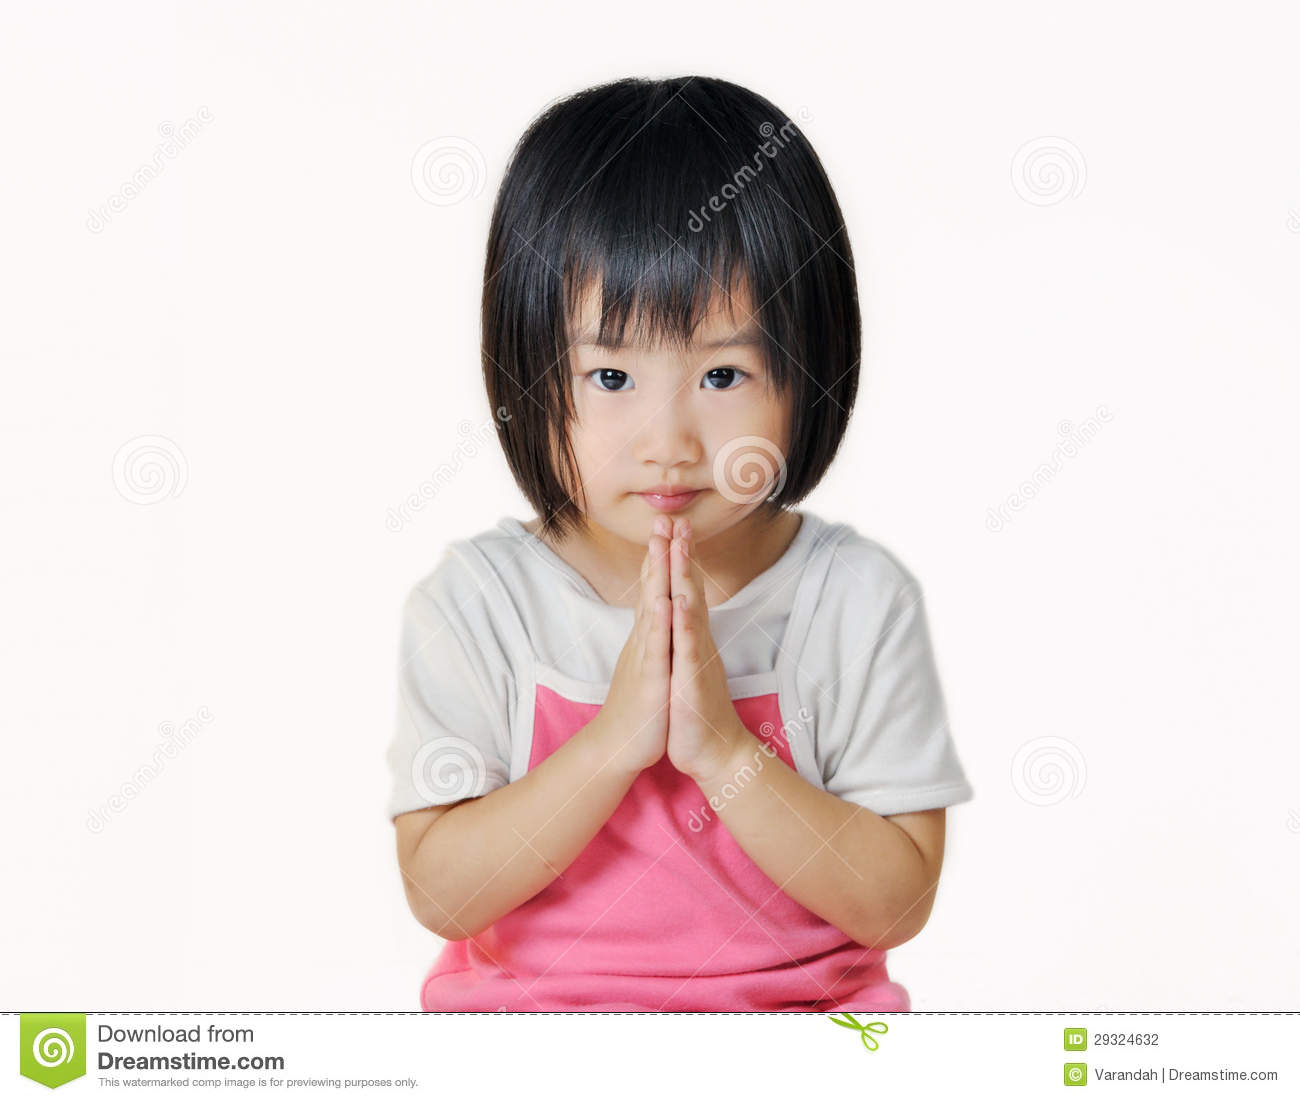 thai child Asian small child pay respect in Thai style